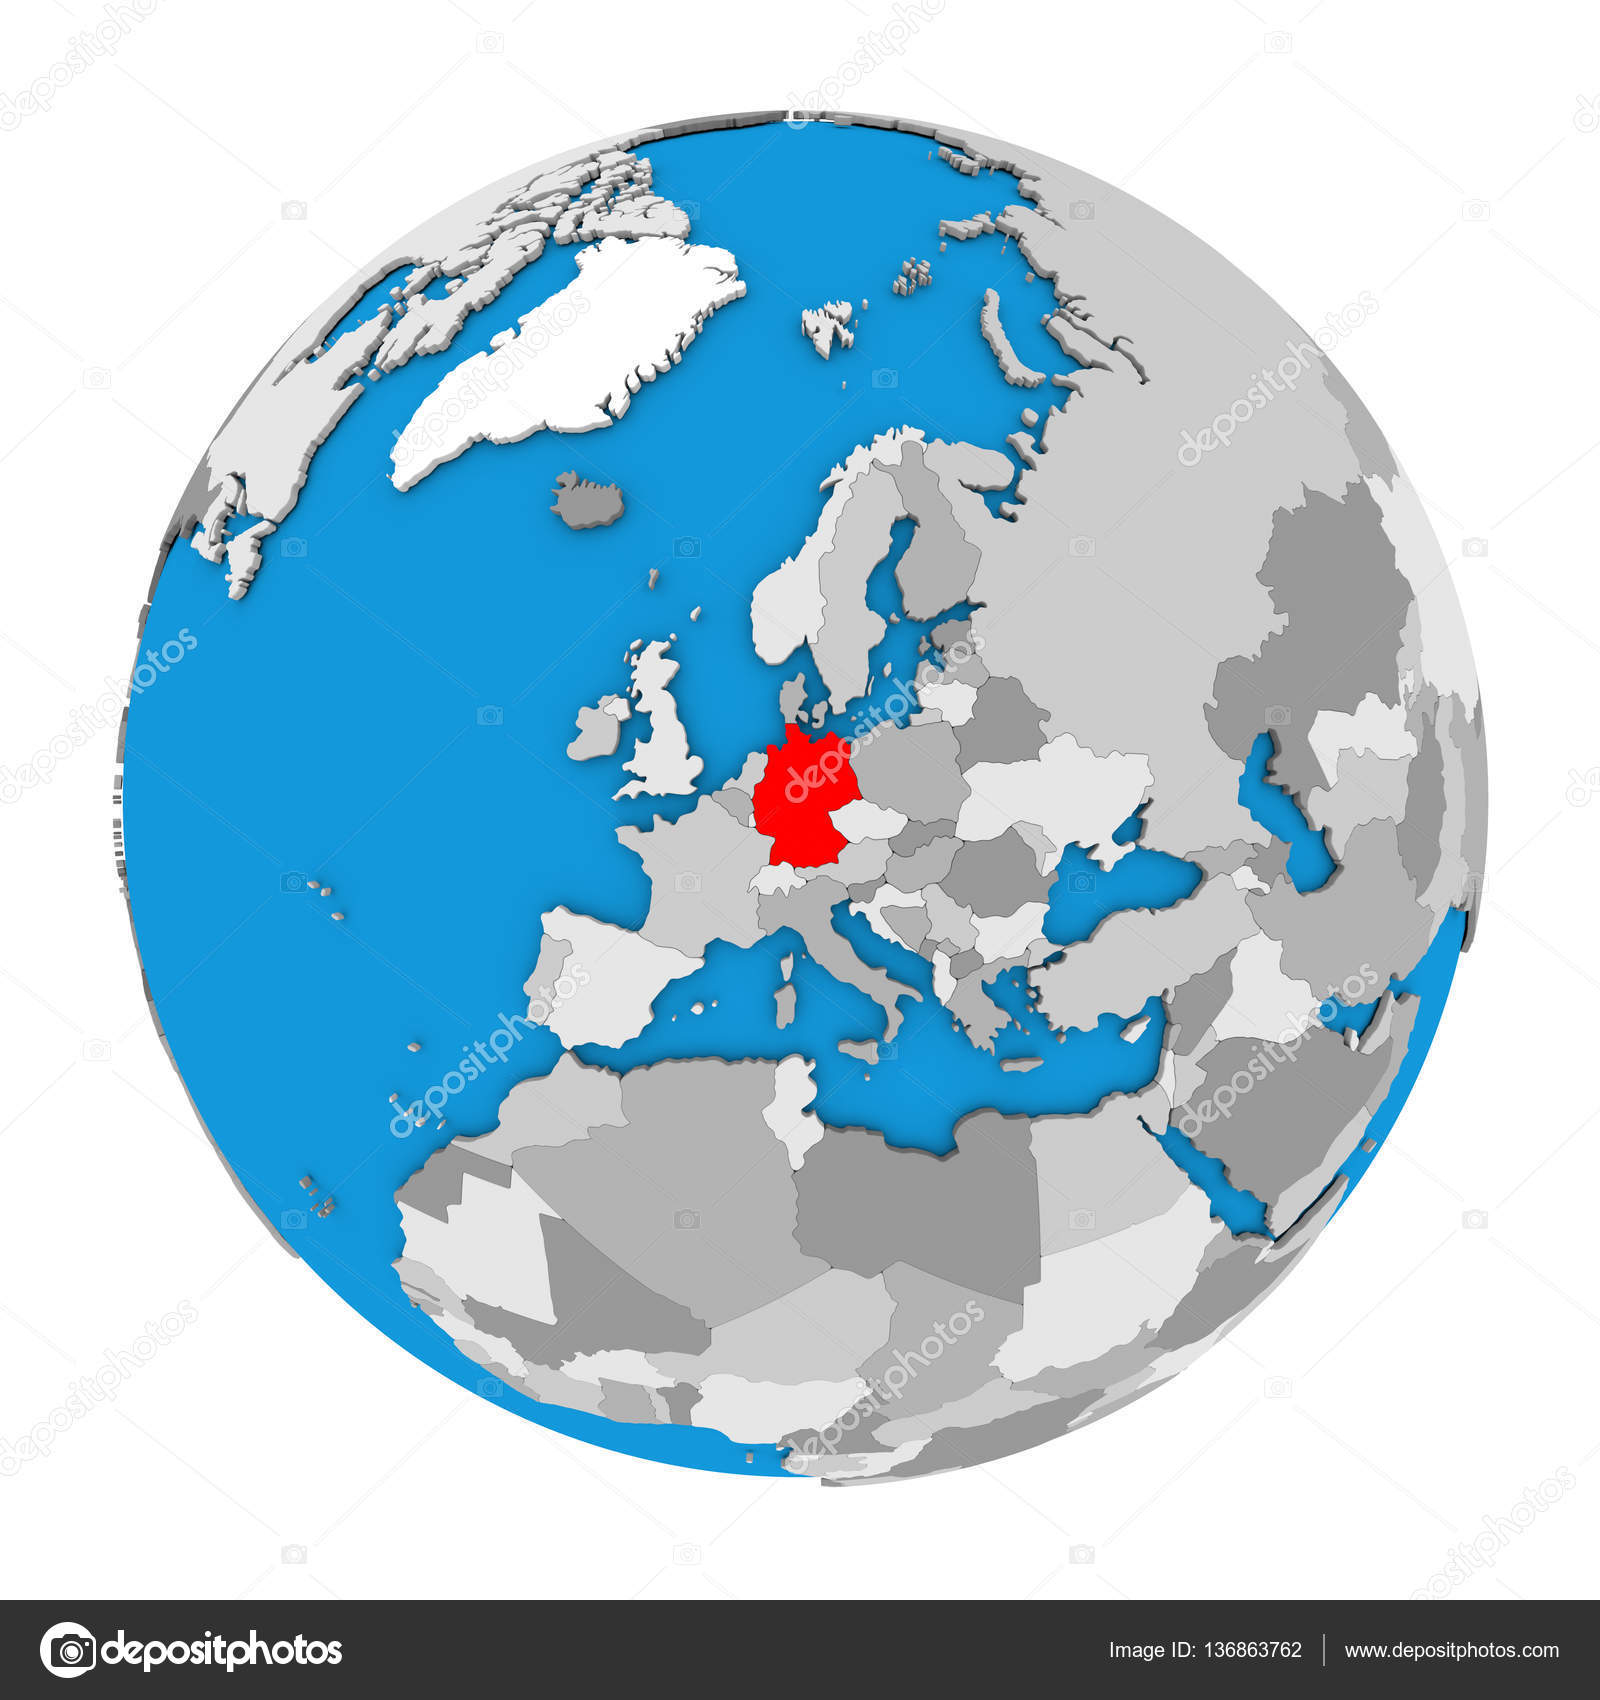 Germany on globe stock photo tomiger 136863762 map of germany highlighted in red on globe 3d illustration isolated on white background photo by tomiger gumiabroncs Choice Image